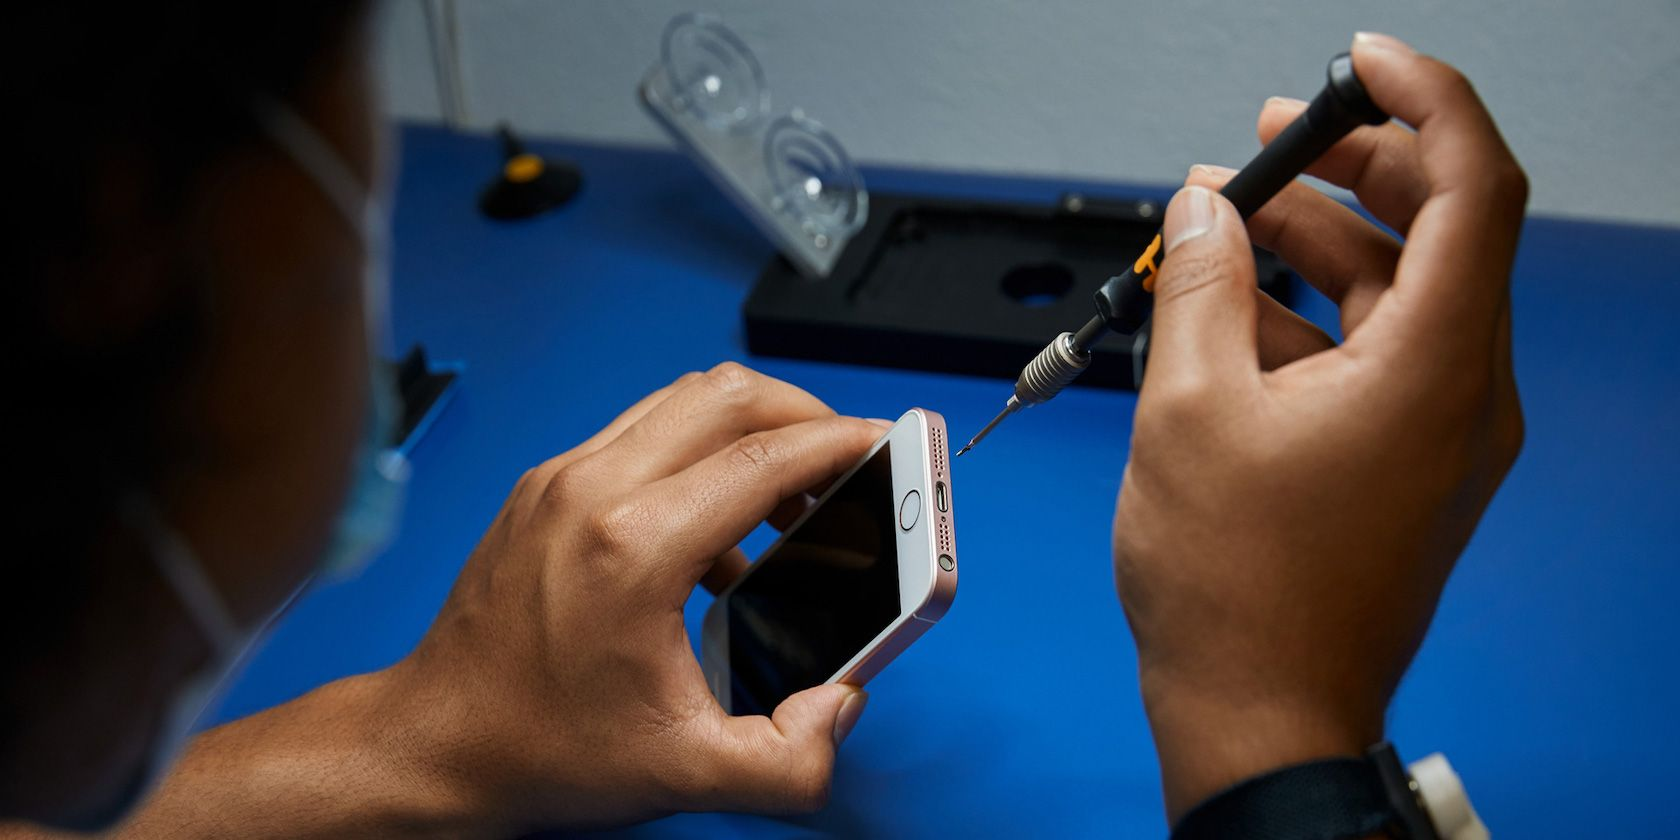 Apple's Independent Repair Provider Program Expands to 200 Countries